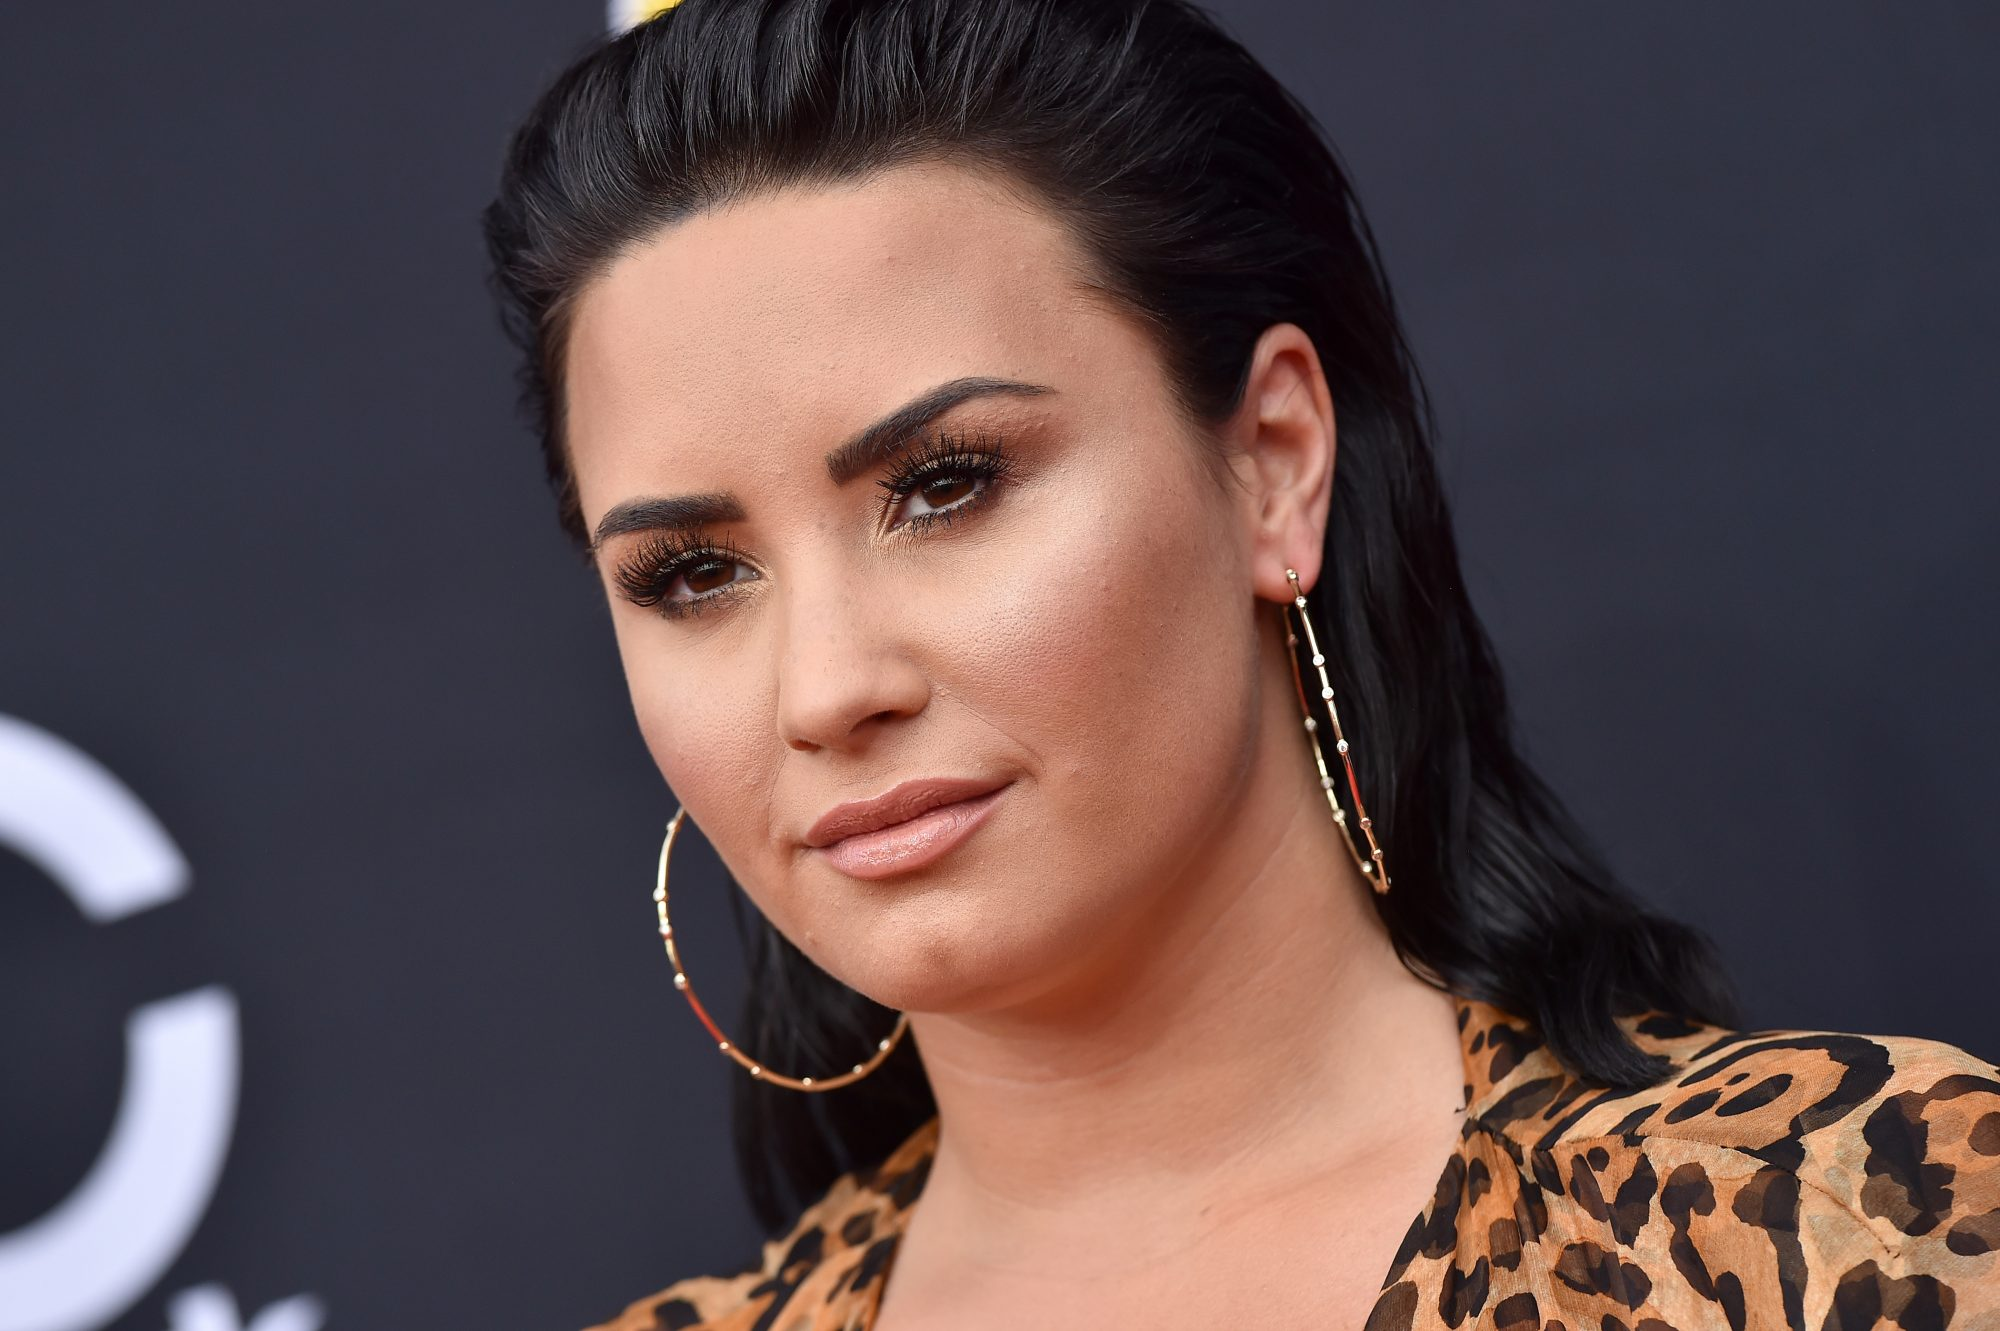 What We Can Learn From Demi Lovato's Overdose After 6 Years Sober